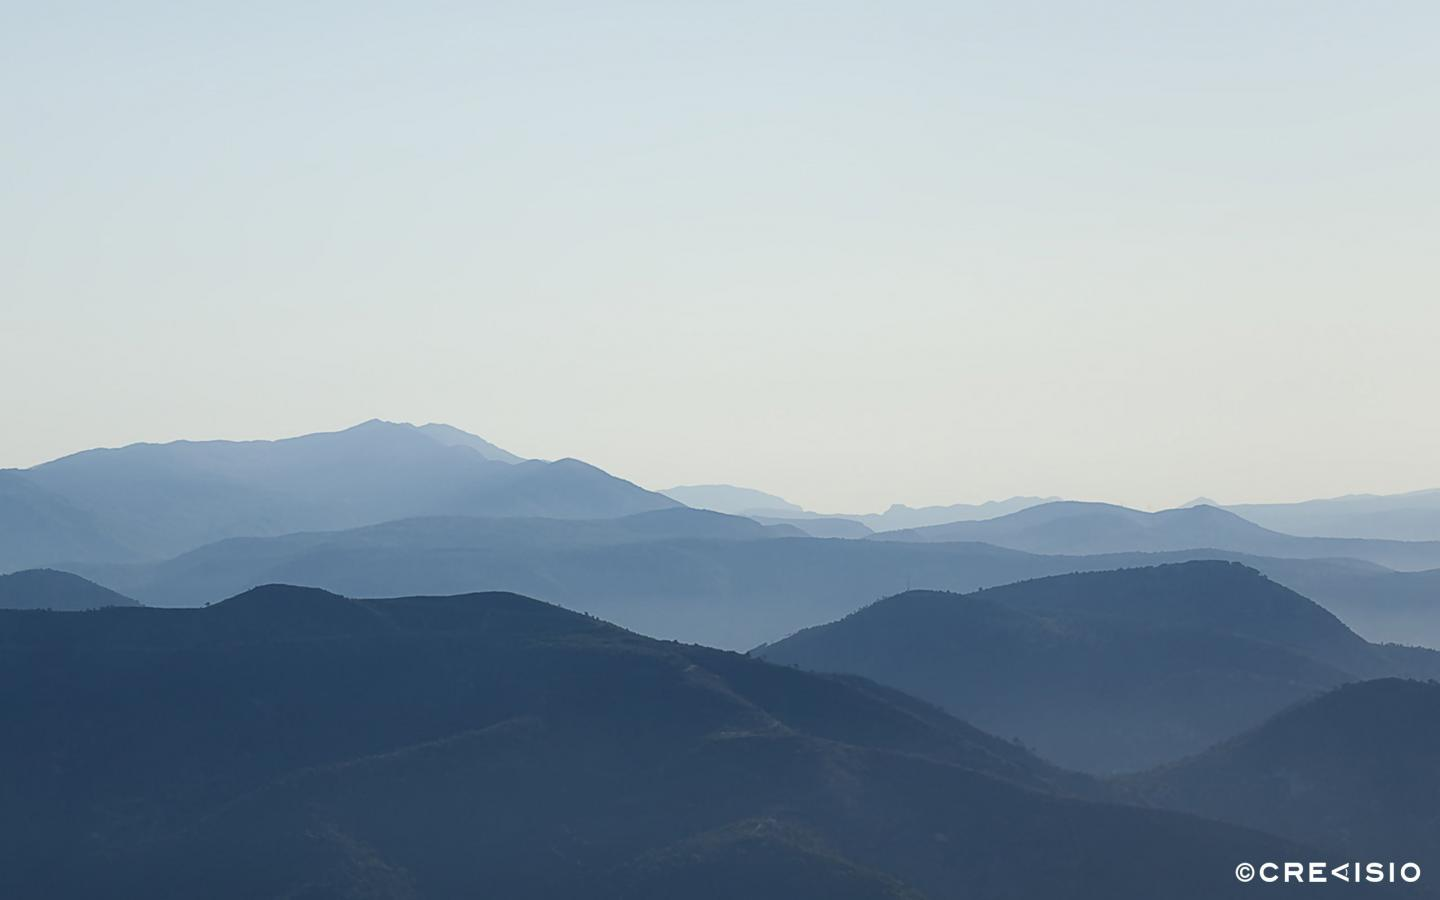 Mountain Horizon by Crevisio